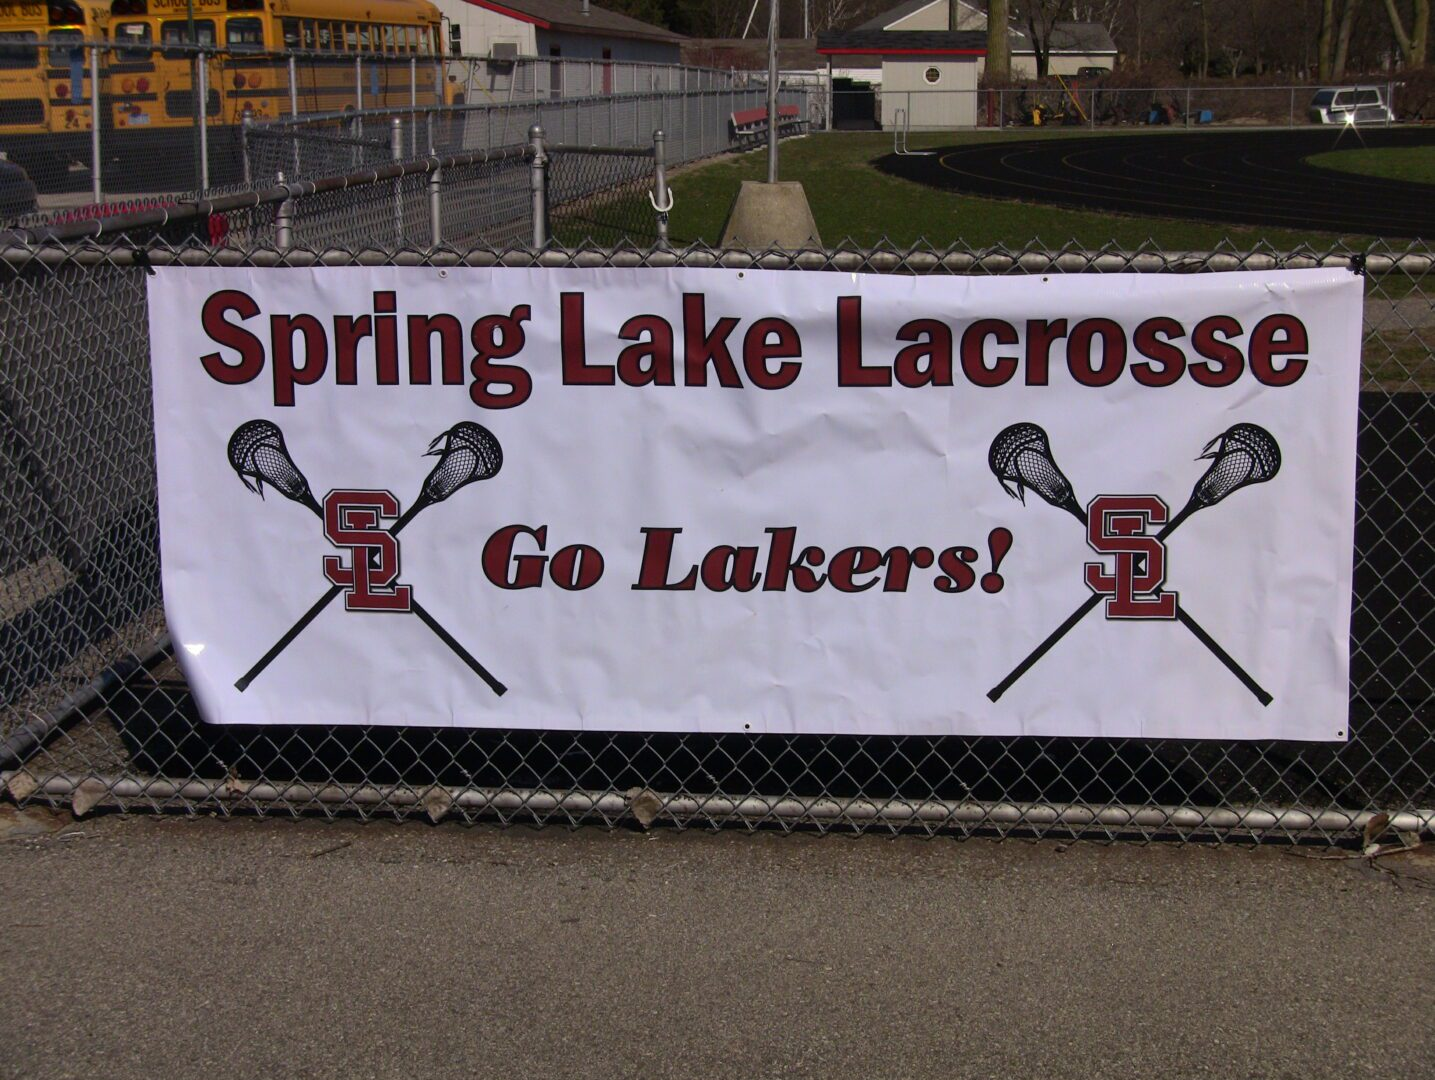 Highlights from Spring Lake's lacrosse victory over Lowell [VIDEO]